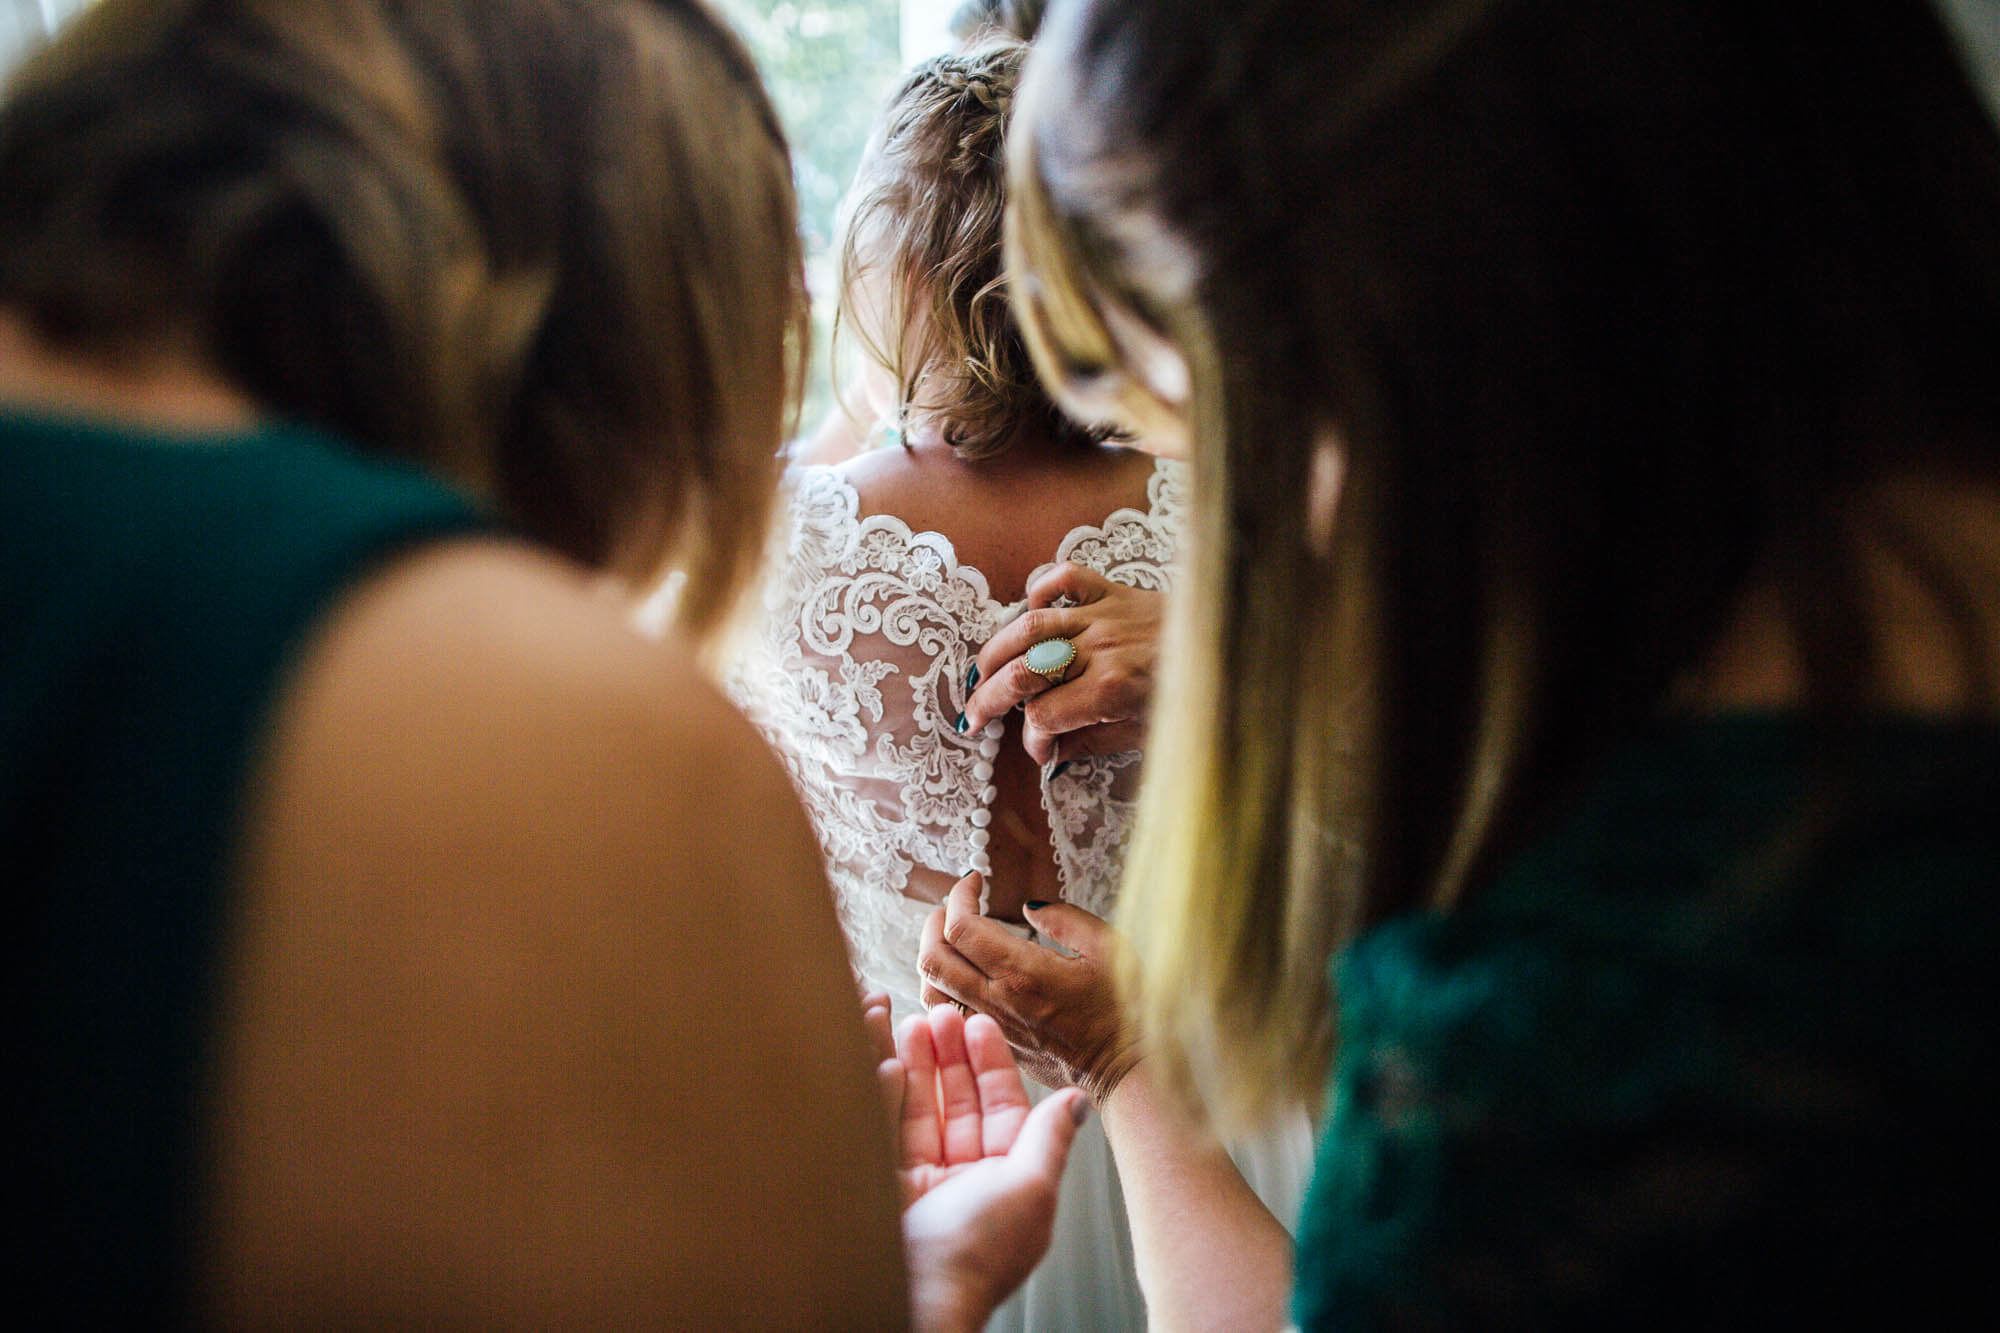 Brides dress being buttoned up